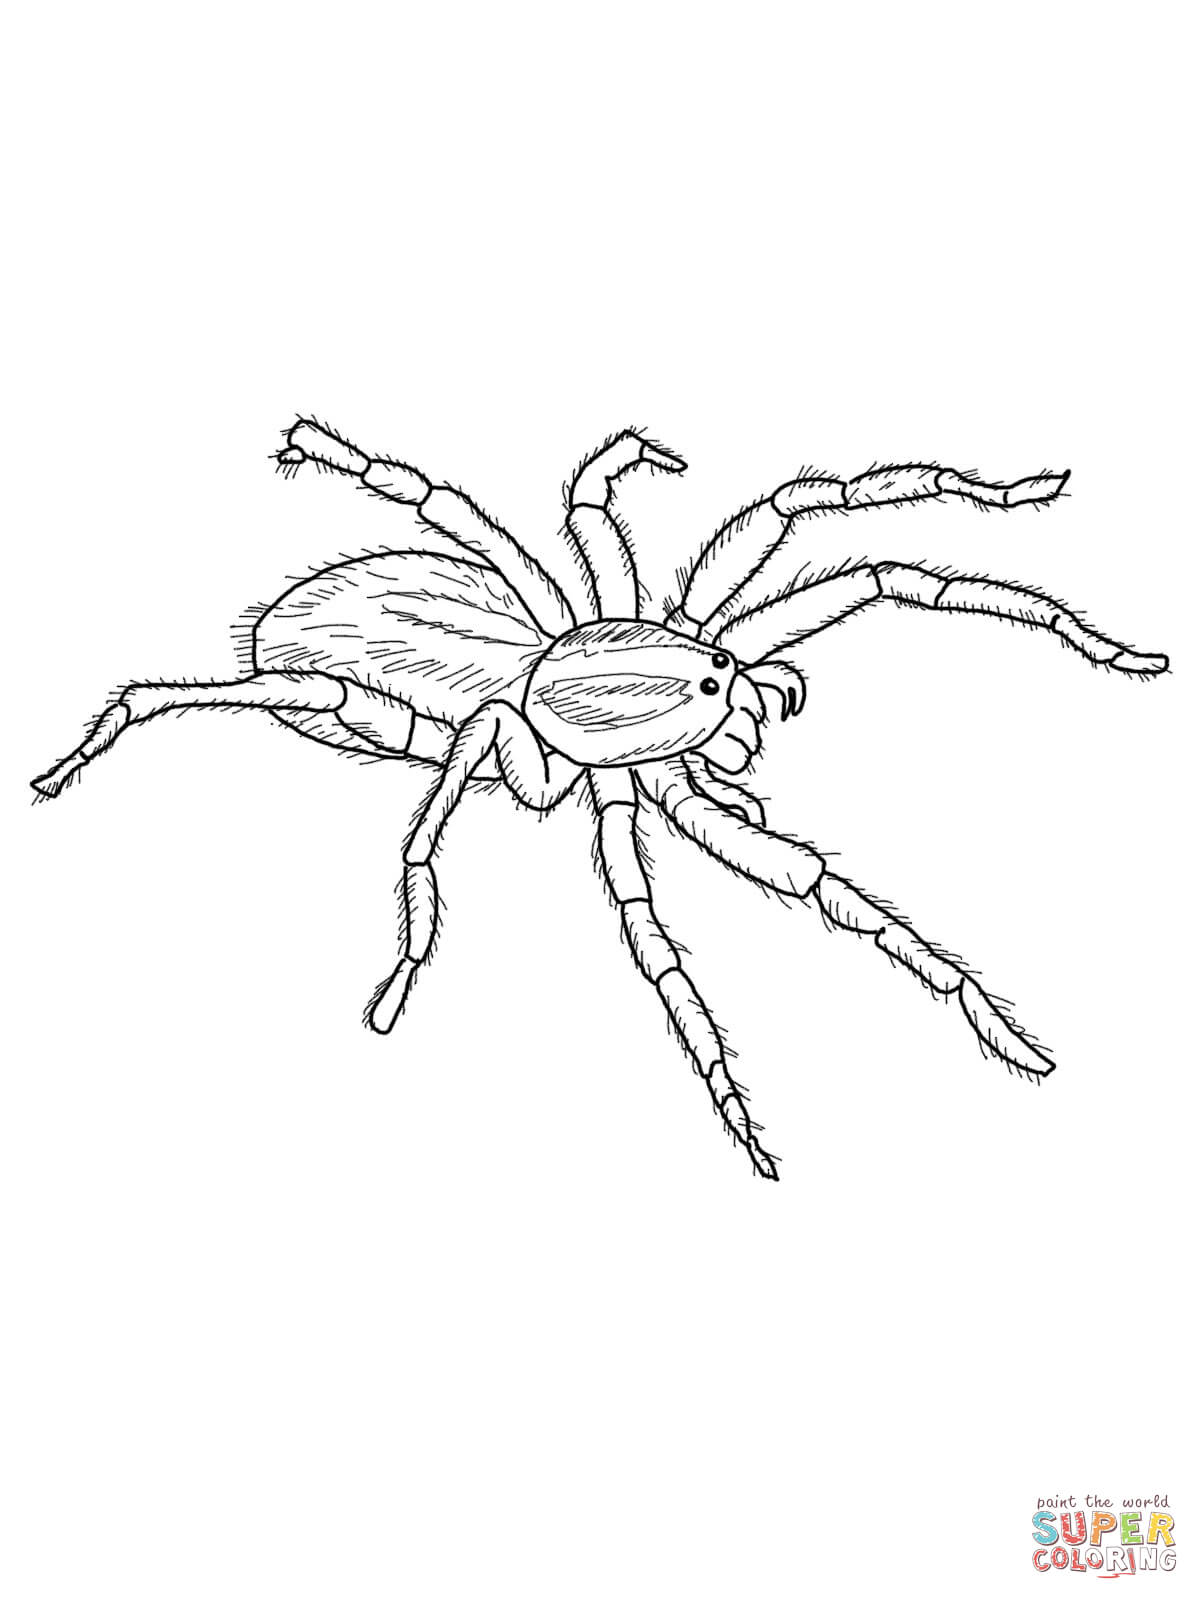 spider-coloring-page-0025-q1